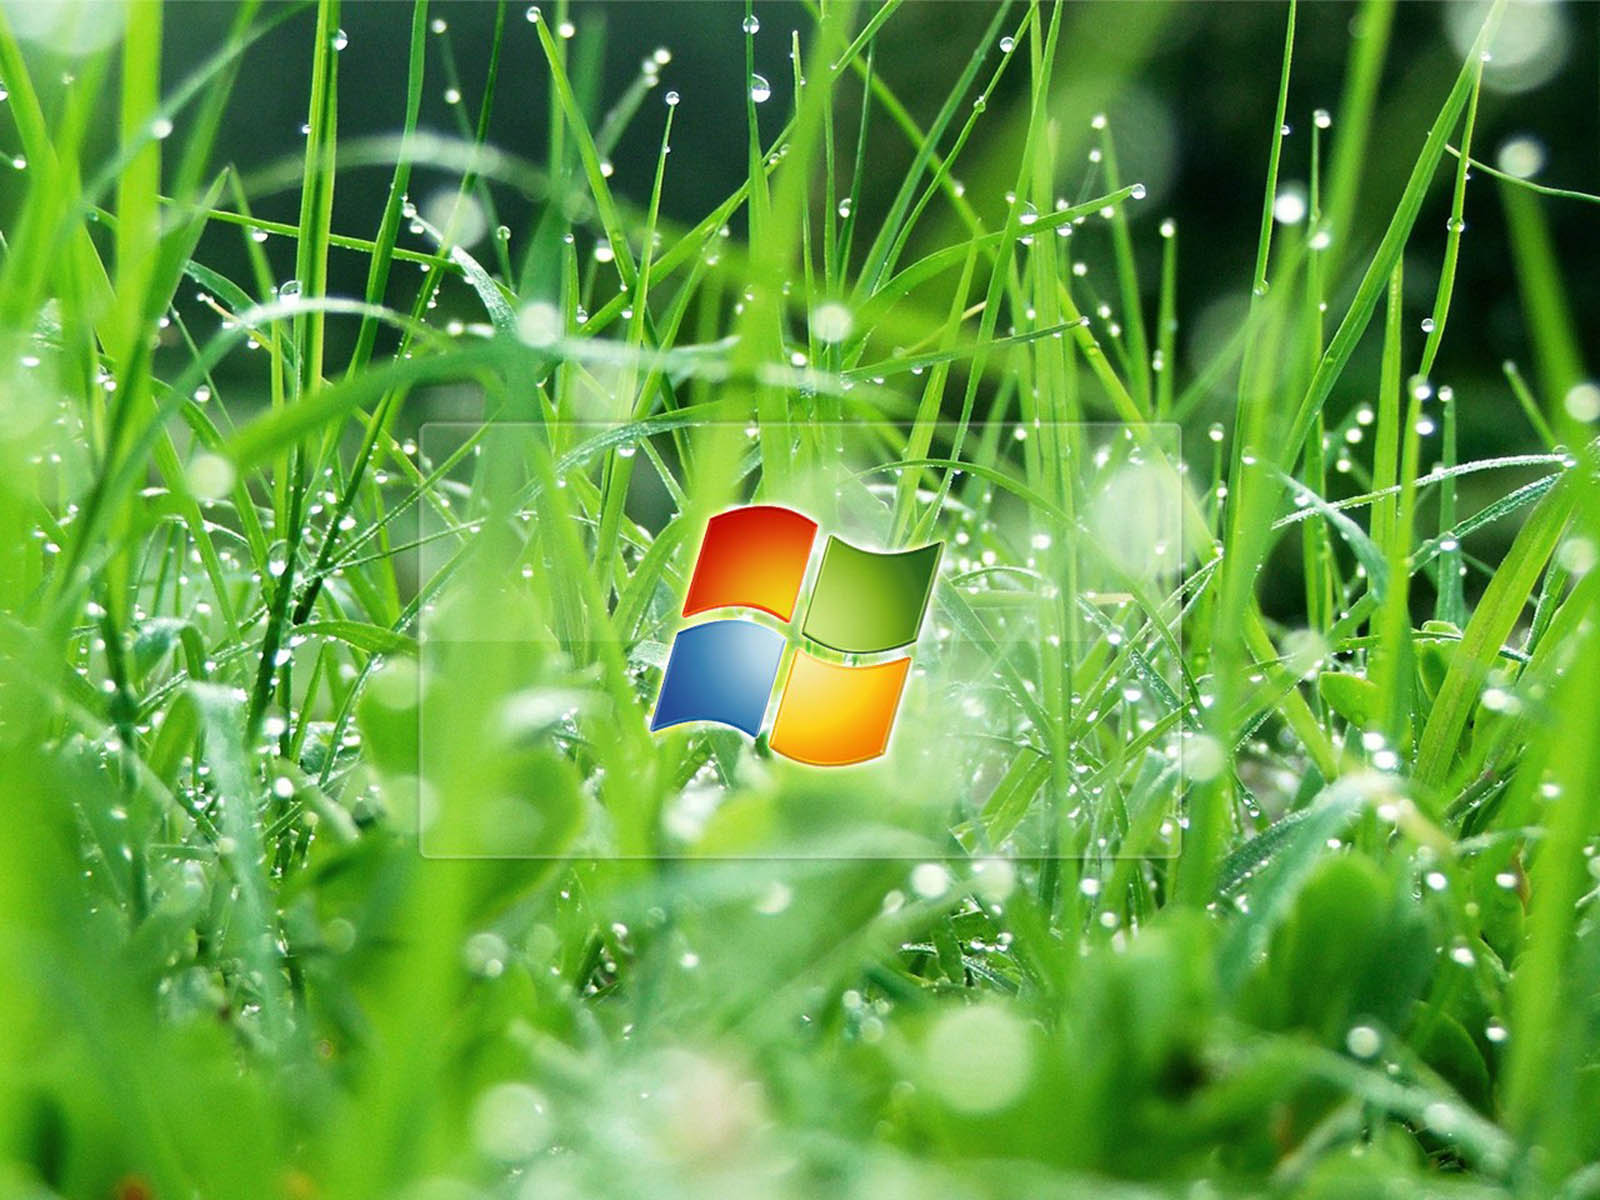 you are watching the windows xp wallpapers windows xp desktop wallpapers windows xp desktop backgrounds windows xp paos windows xp pictures images